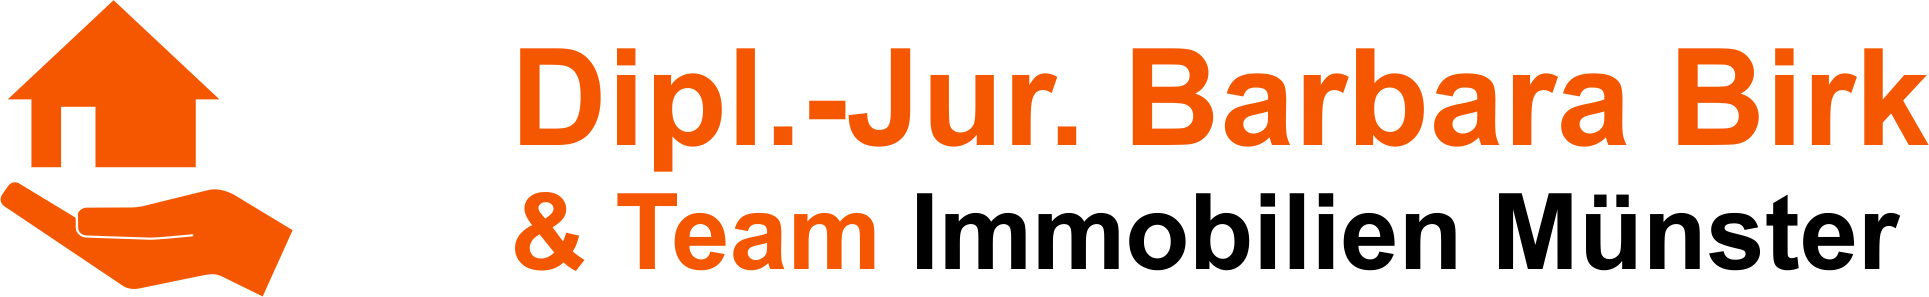 Dipl.-Jur. Barbara Birk & Team Immobilien Münster